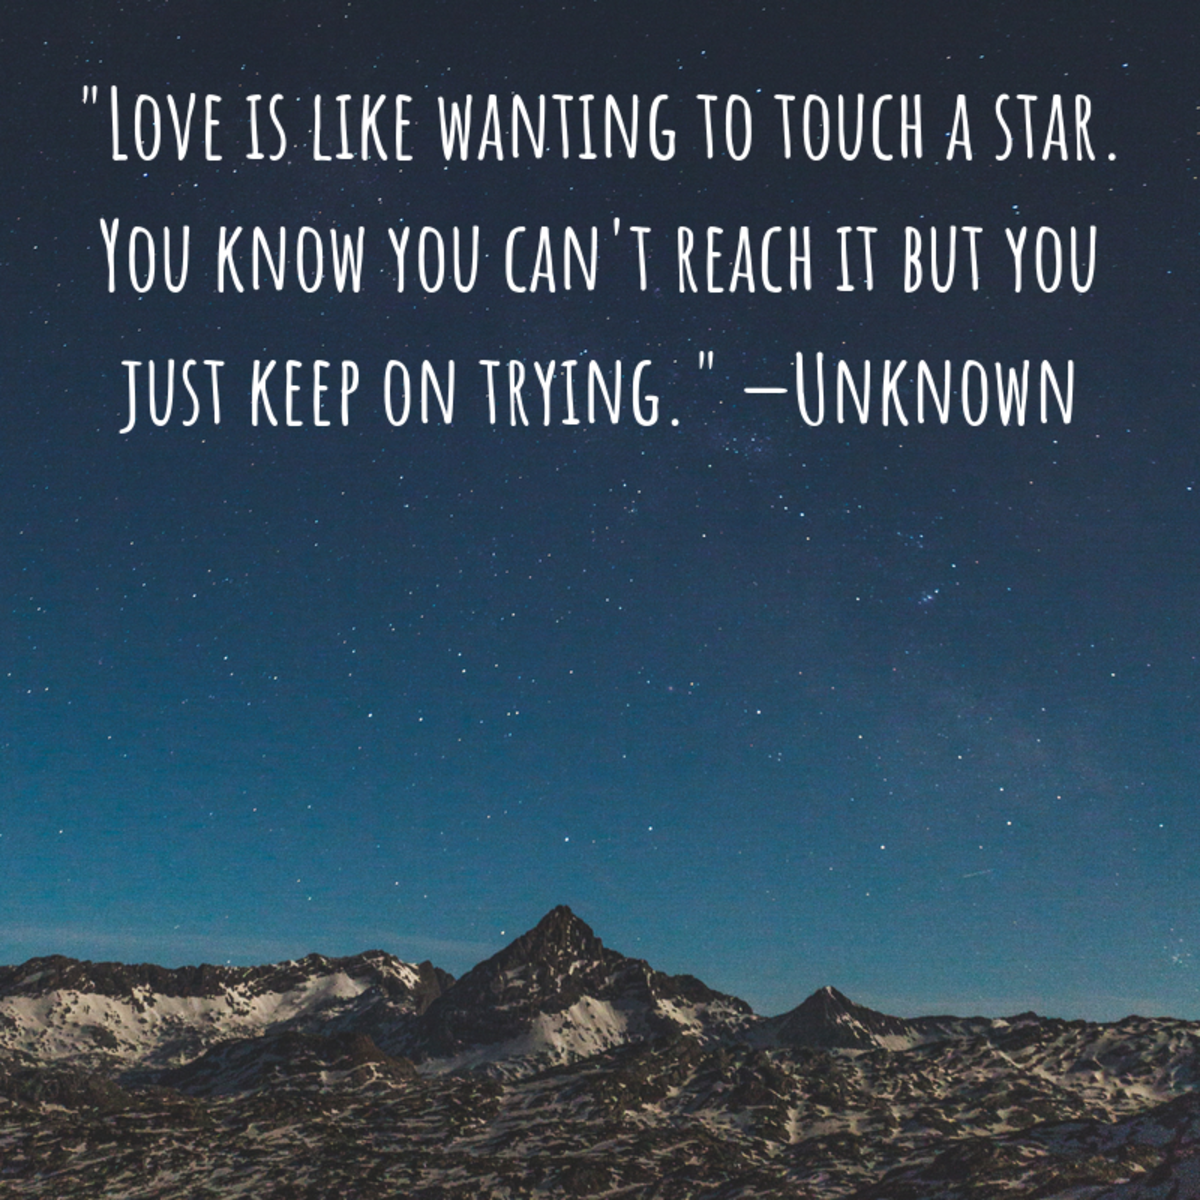 """Love is like wanting to touch a star. You know you can't reach it but you just keep on trying."" —Unknown"